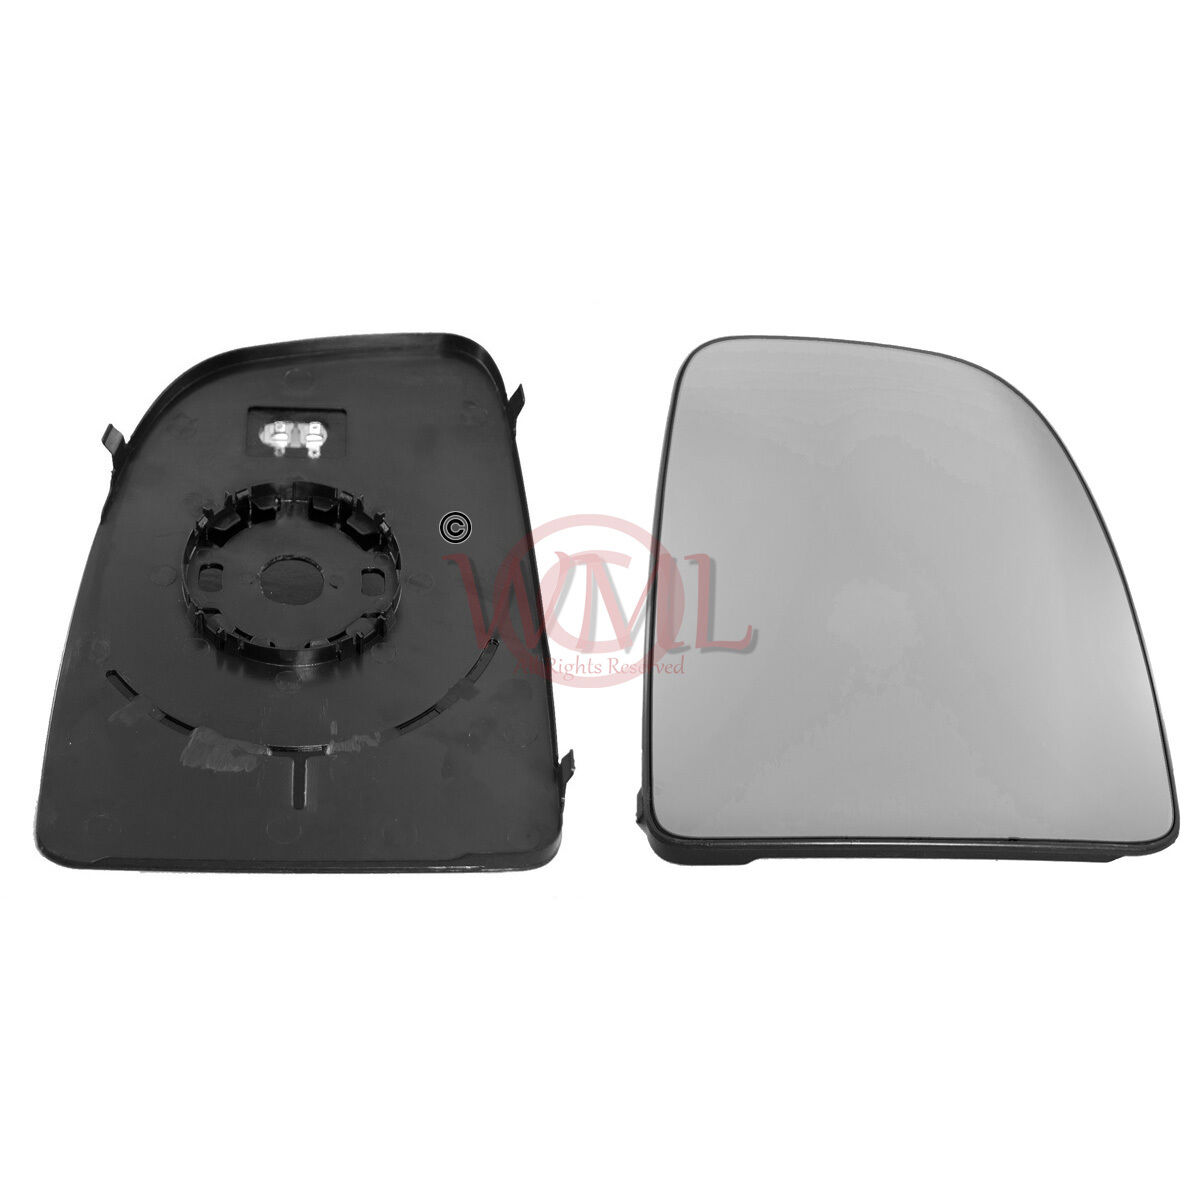 HEATED /& BASE,RIGHTSIDE PEUGEOT BOXER 2006-/>2019 BLIND SPOT MIRROR GLASS SILVER